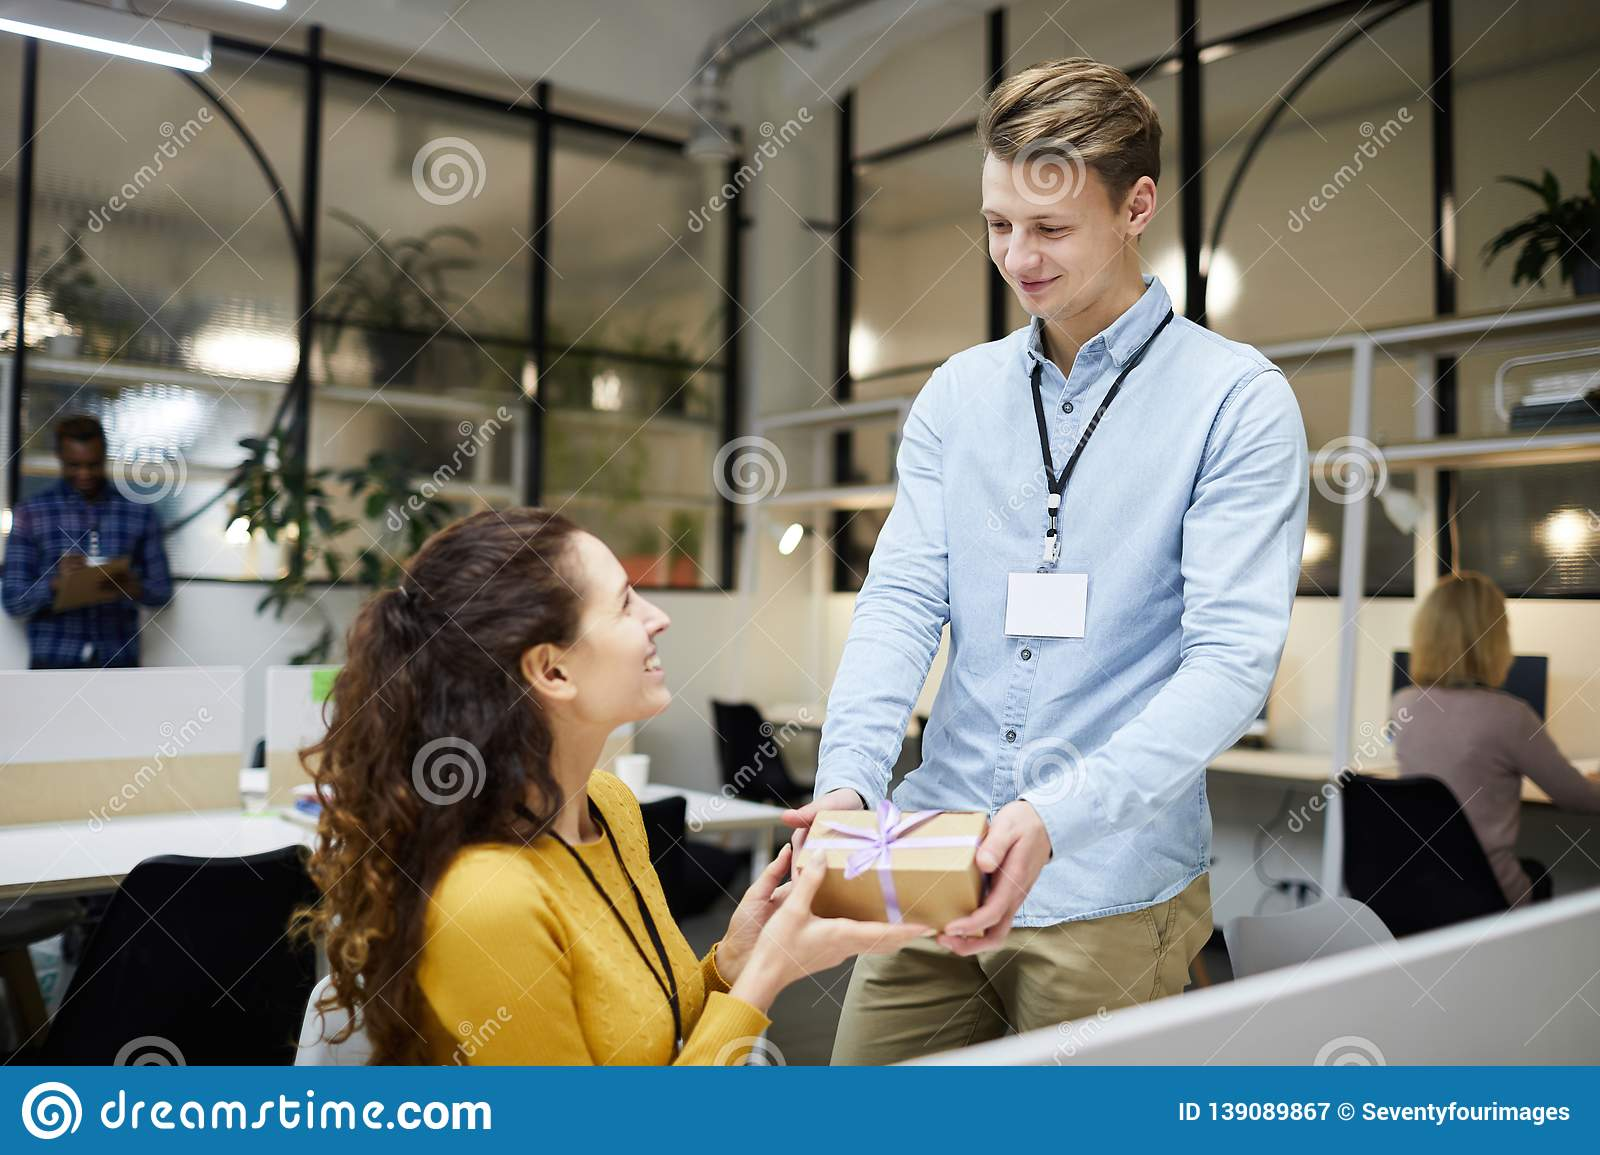 Happy Attractive Young Lady With Curly Hair Sitting At Table And Accepting Gift From Colleague Badge On Neck Birthday Concept